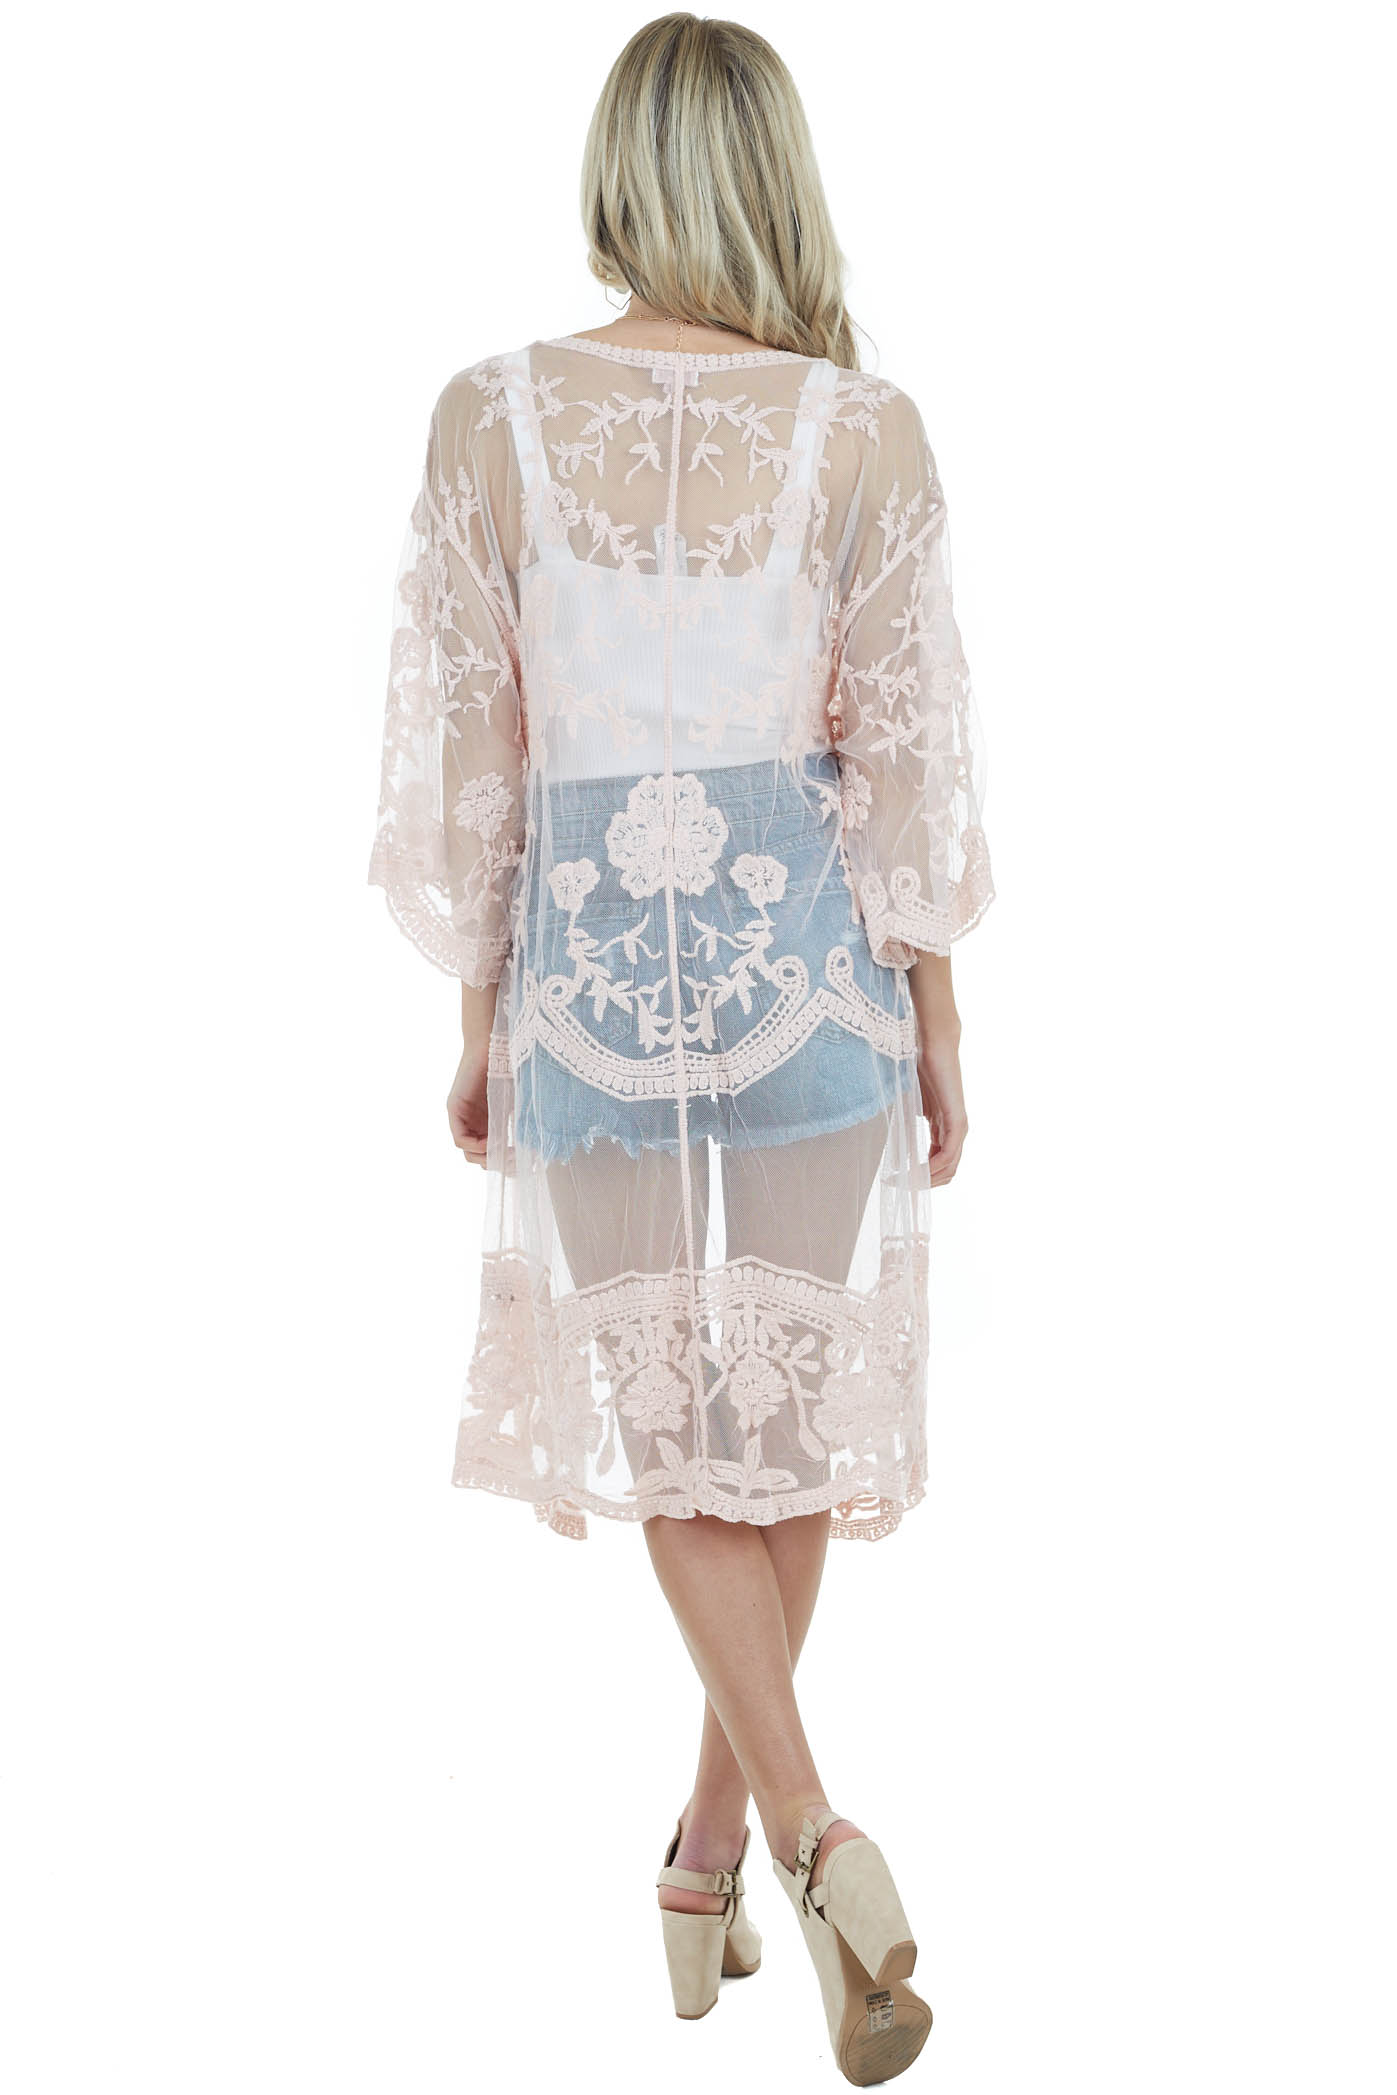 Dusty Peach Crochet Knit Floral Kimono with Short Sleeves